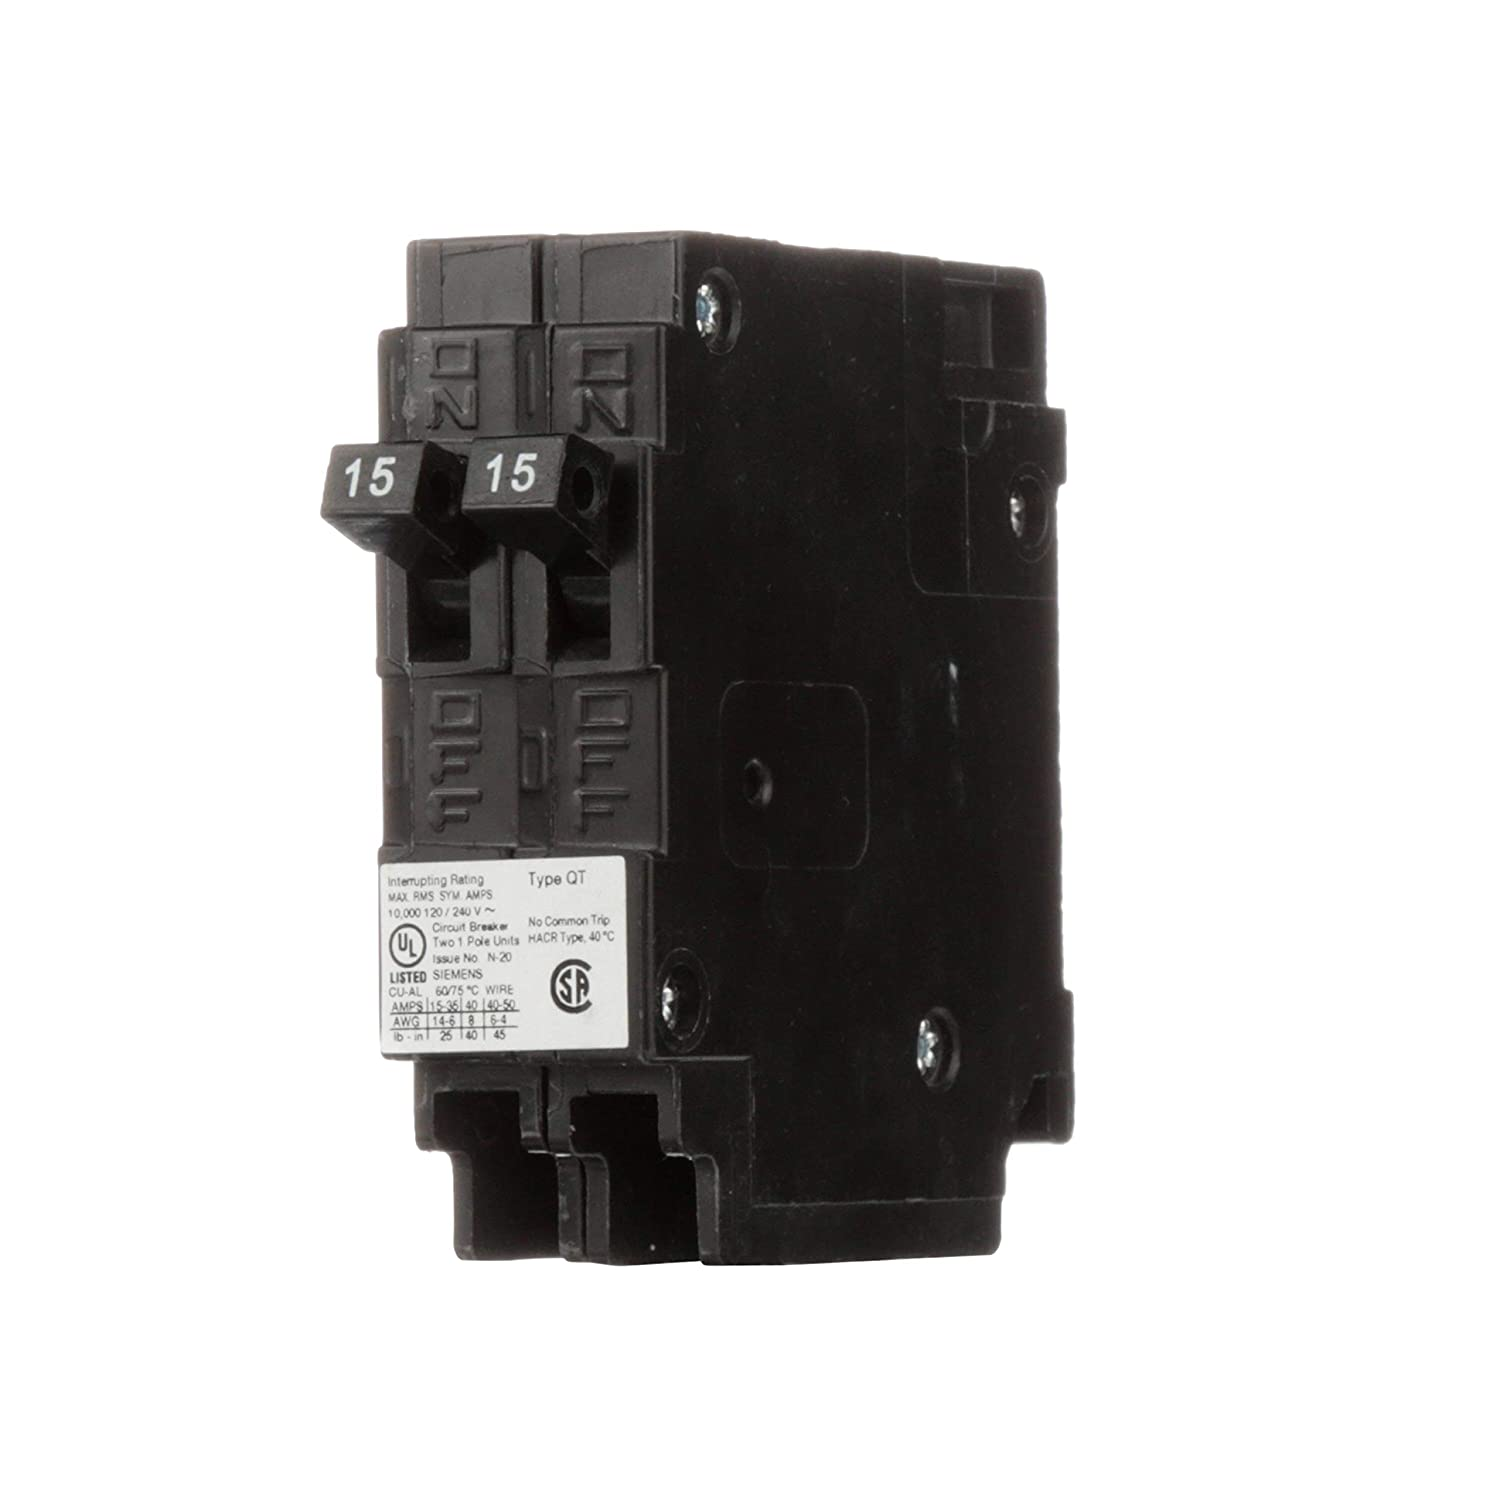 Siemens Q1515nc Two 15 Amp Single Pole 120 Volt Non Current Limiting 240 Rv Wiring Diagram Get Free Image About Circuit Breaker Thermal Magnetic Breakers Amazon Canada